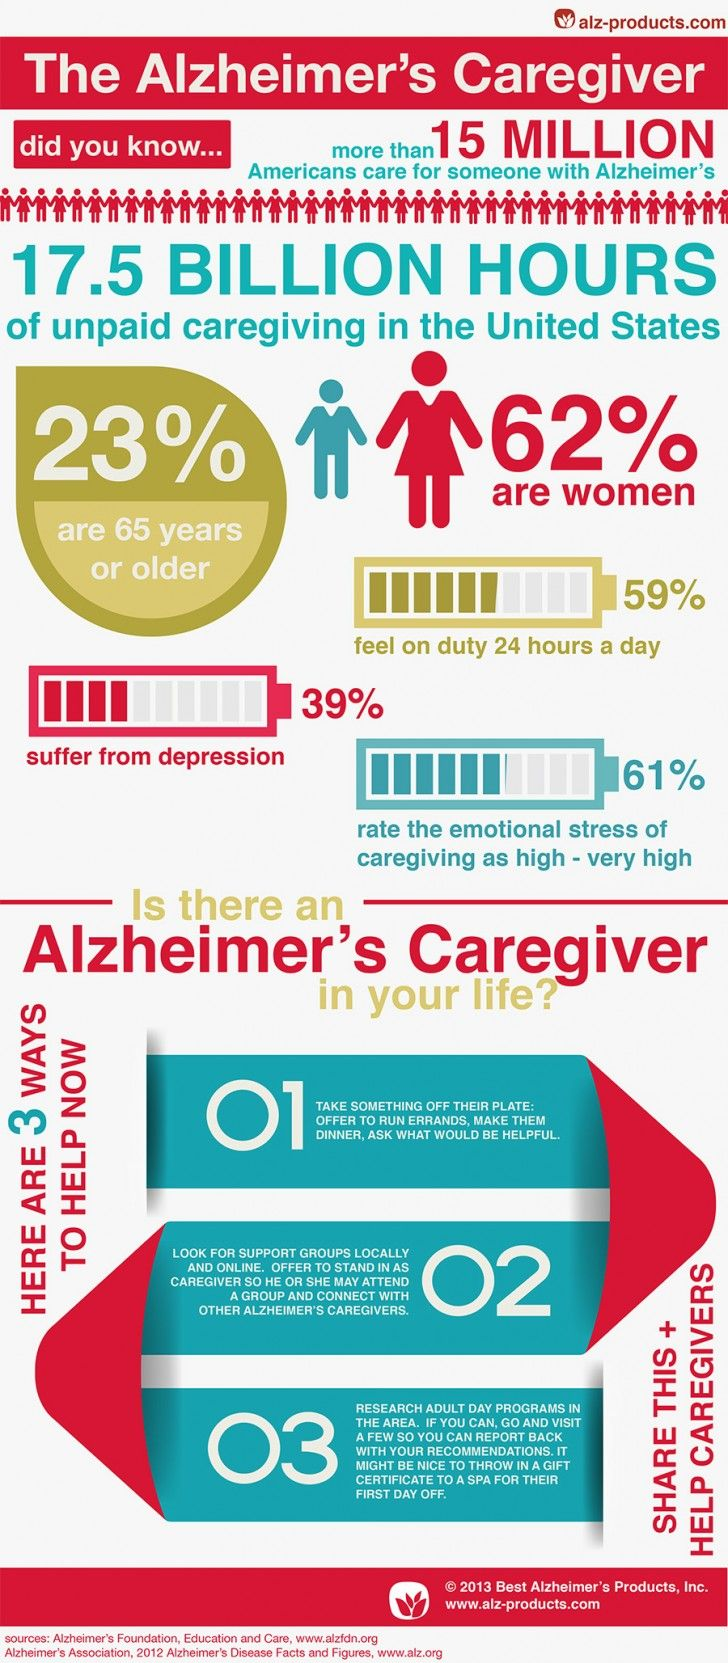 best ideas about dementia statistics alzheimers the alzheimer s caregiver alzheimer s caregiver statistics infographic source